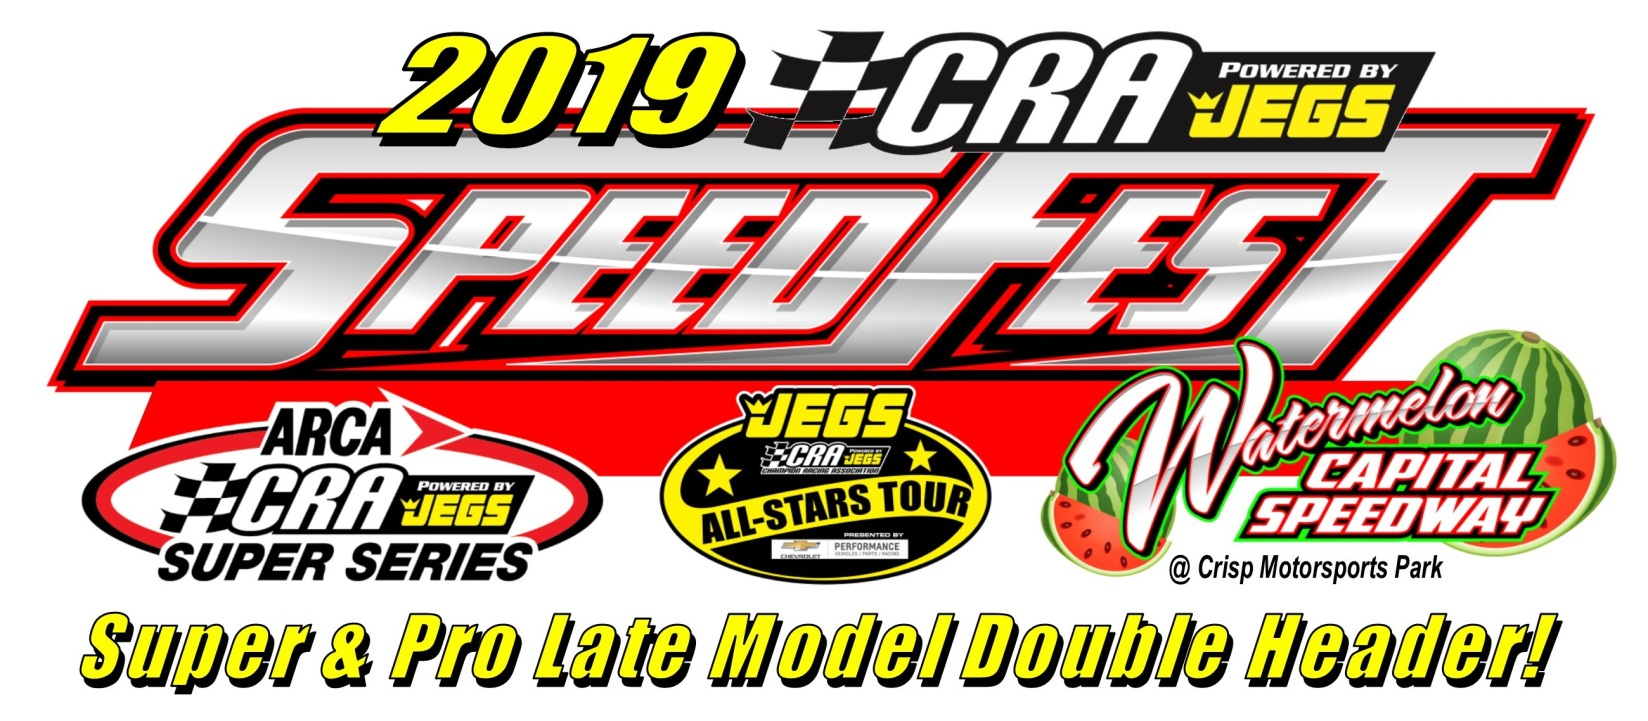 SpeedFest 2019 Tickets On Sale Now!